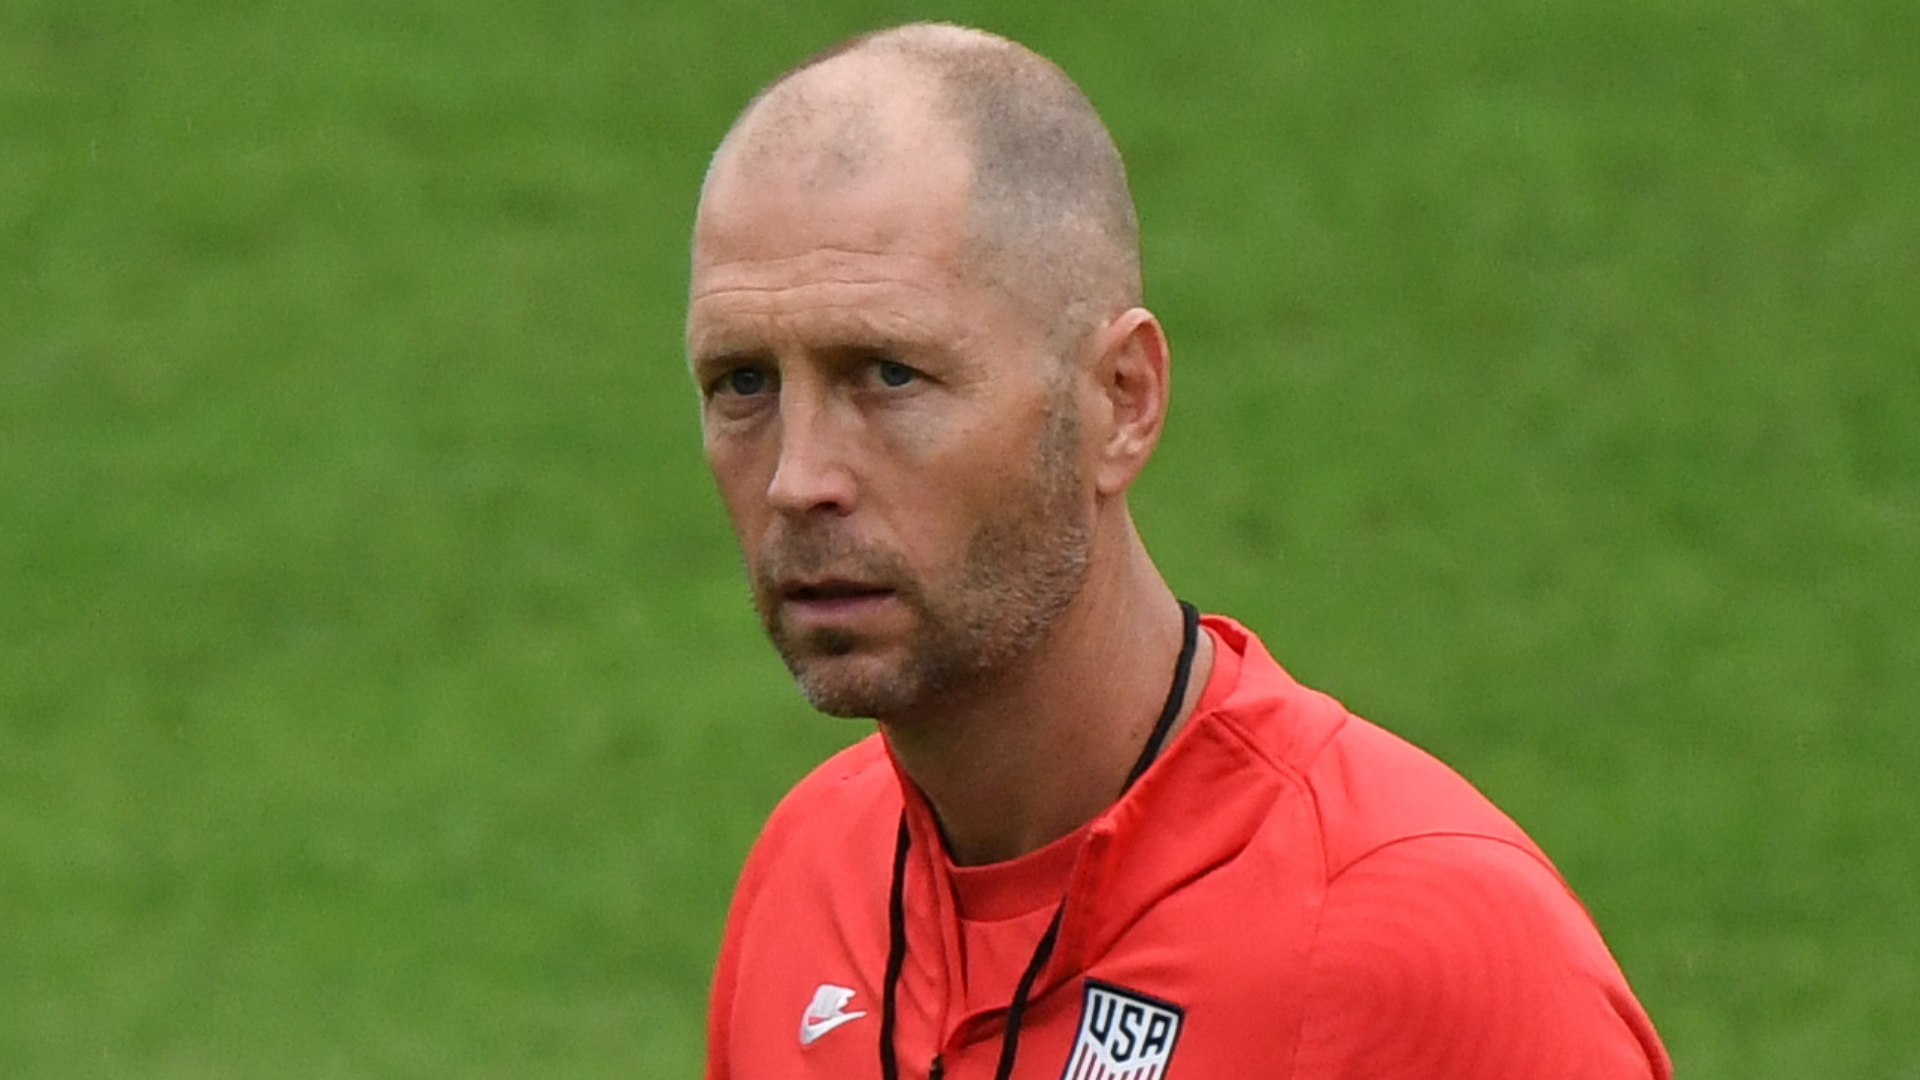 'I don't regret playing that lineup' - USMNT's Berhalter responds to team selection criticism in wake of Panama defeat